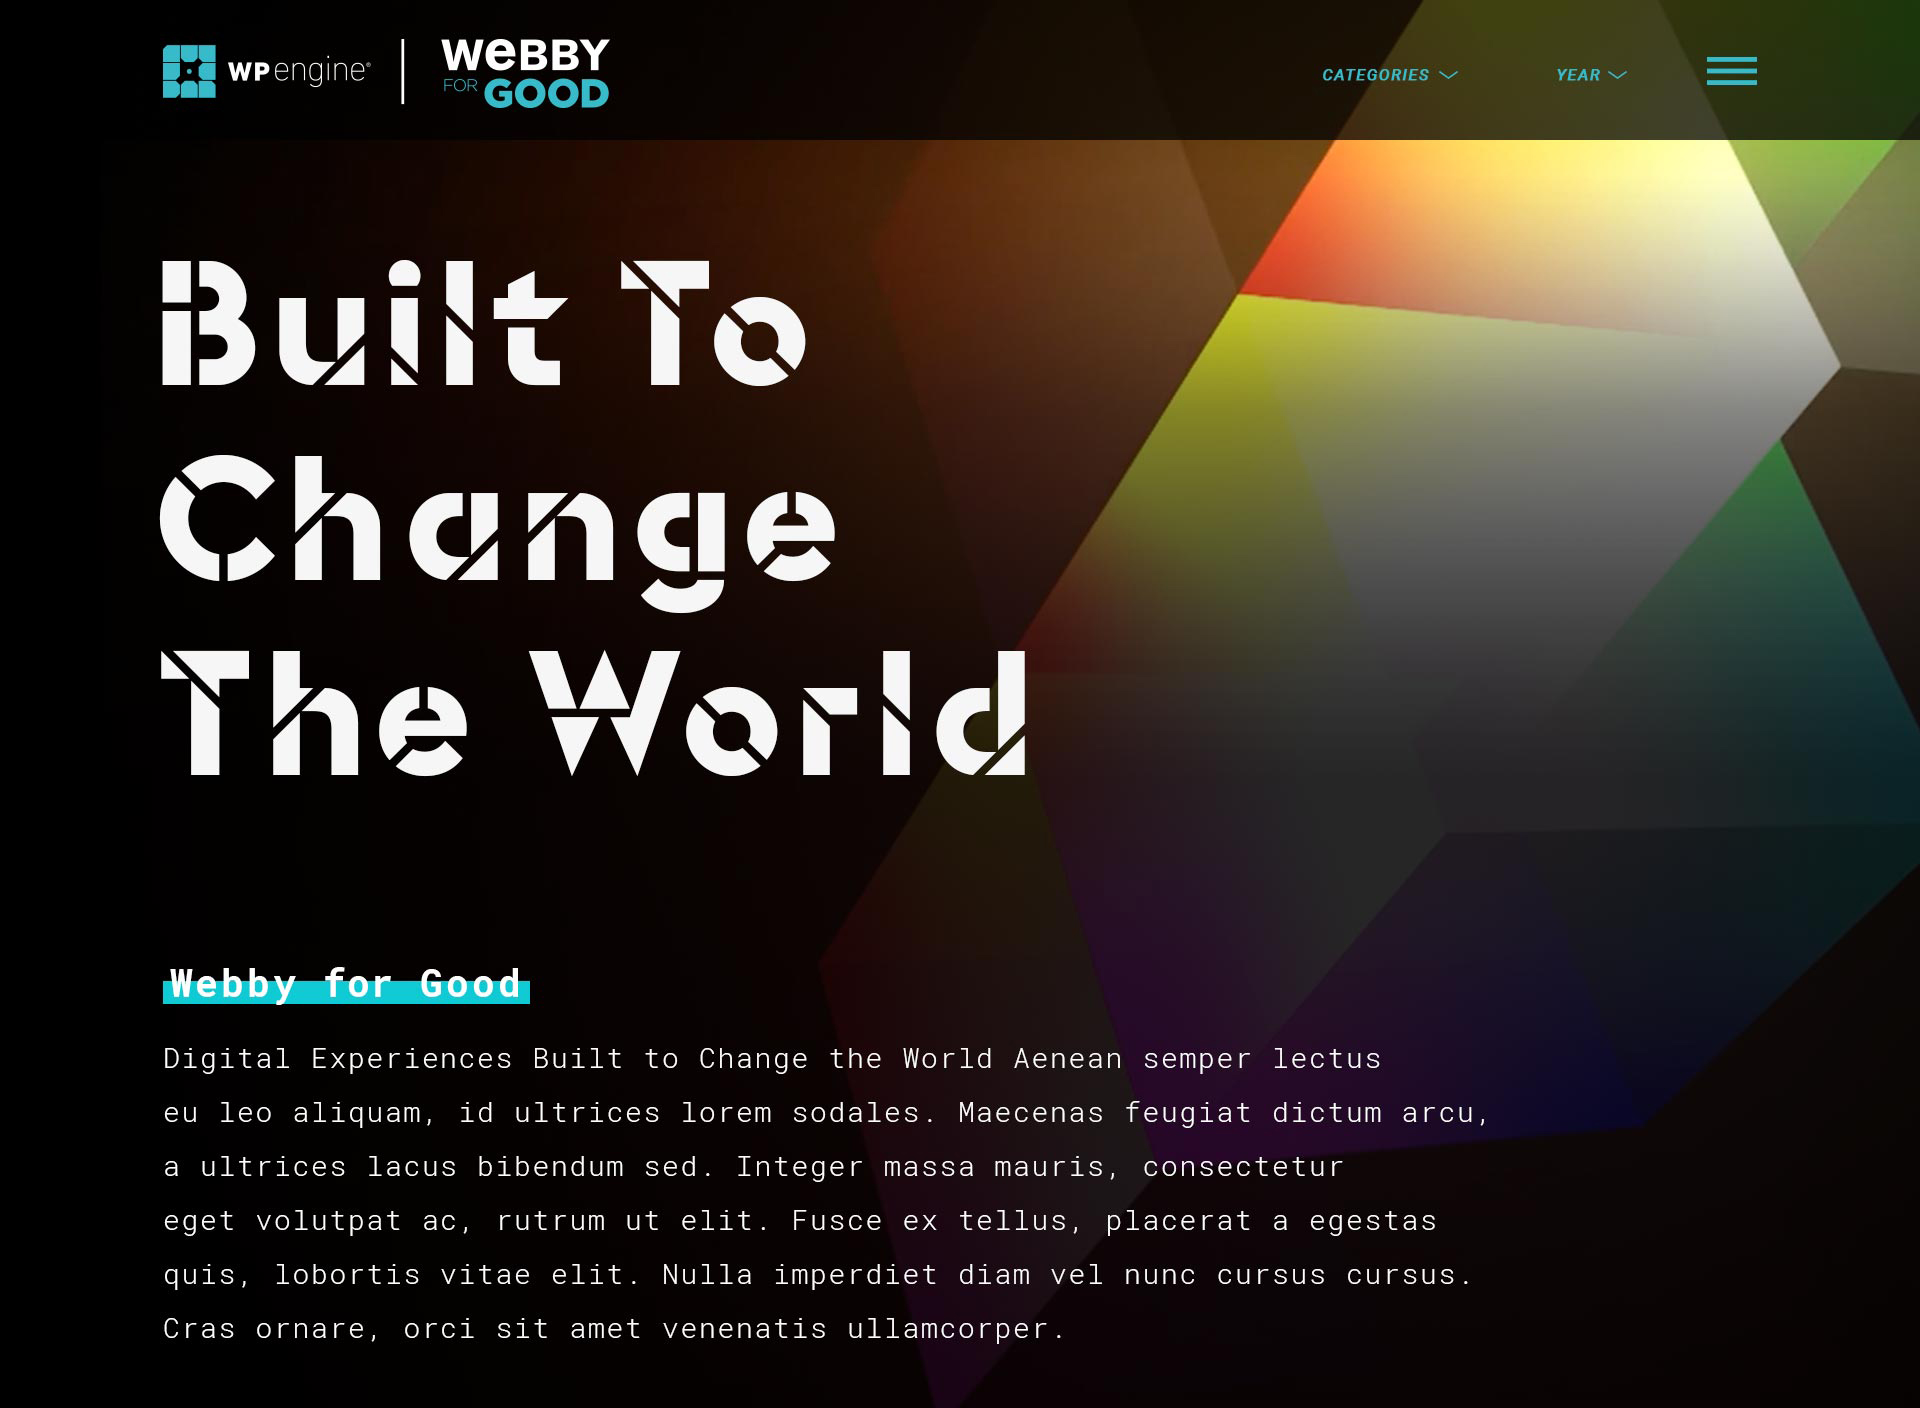 The 2018 initial design of Webby for Good